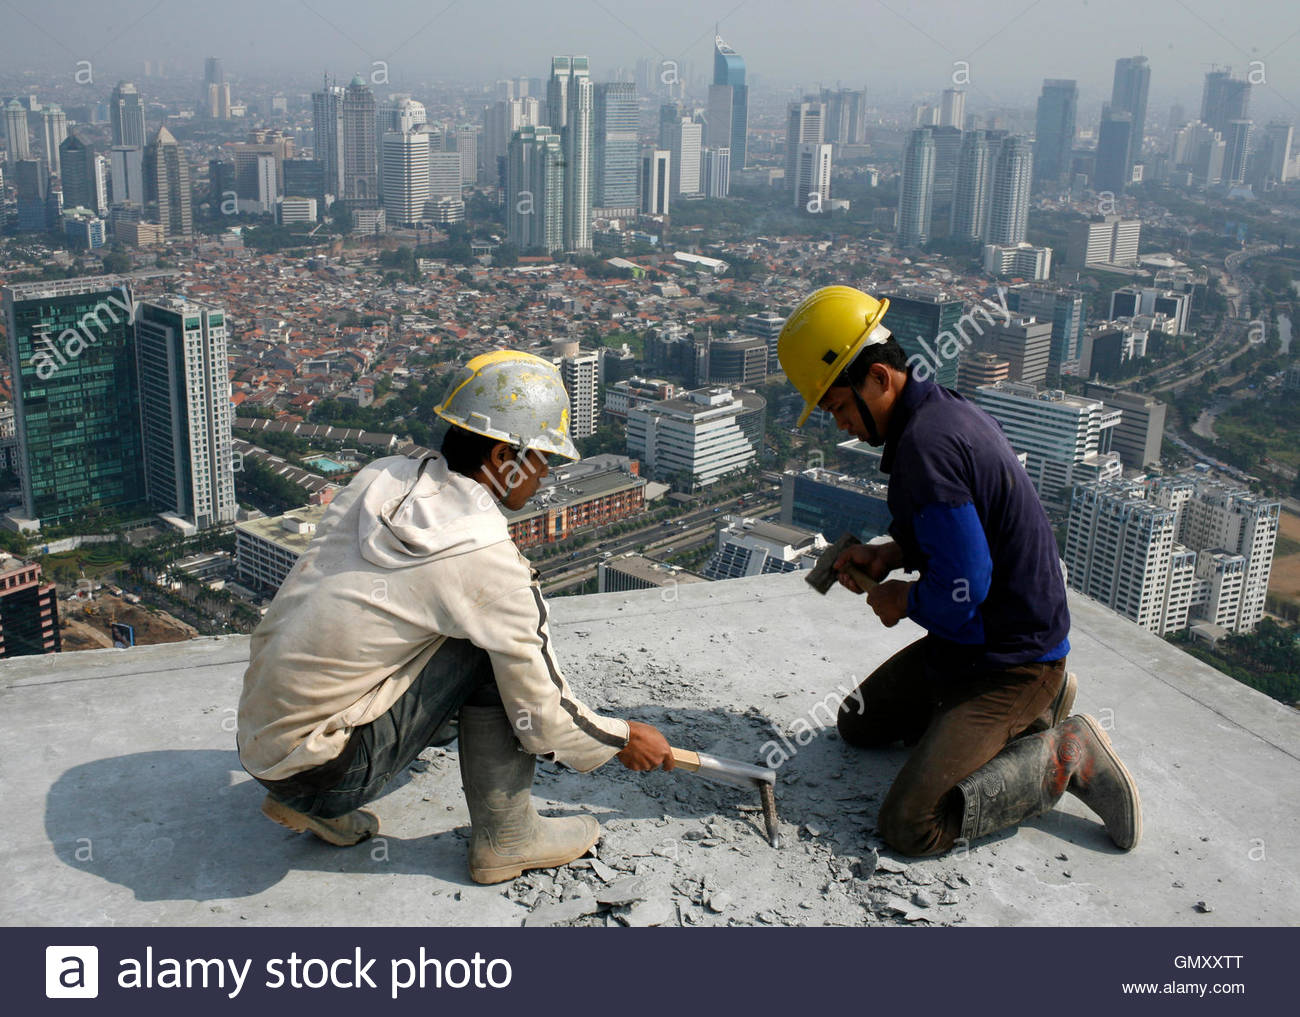 Stock Photo Workers Work At A Contruction Site To Build An Office Building And Shopping Mall